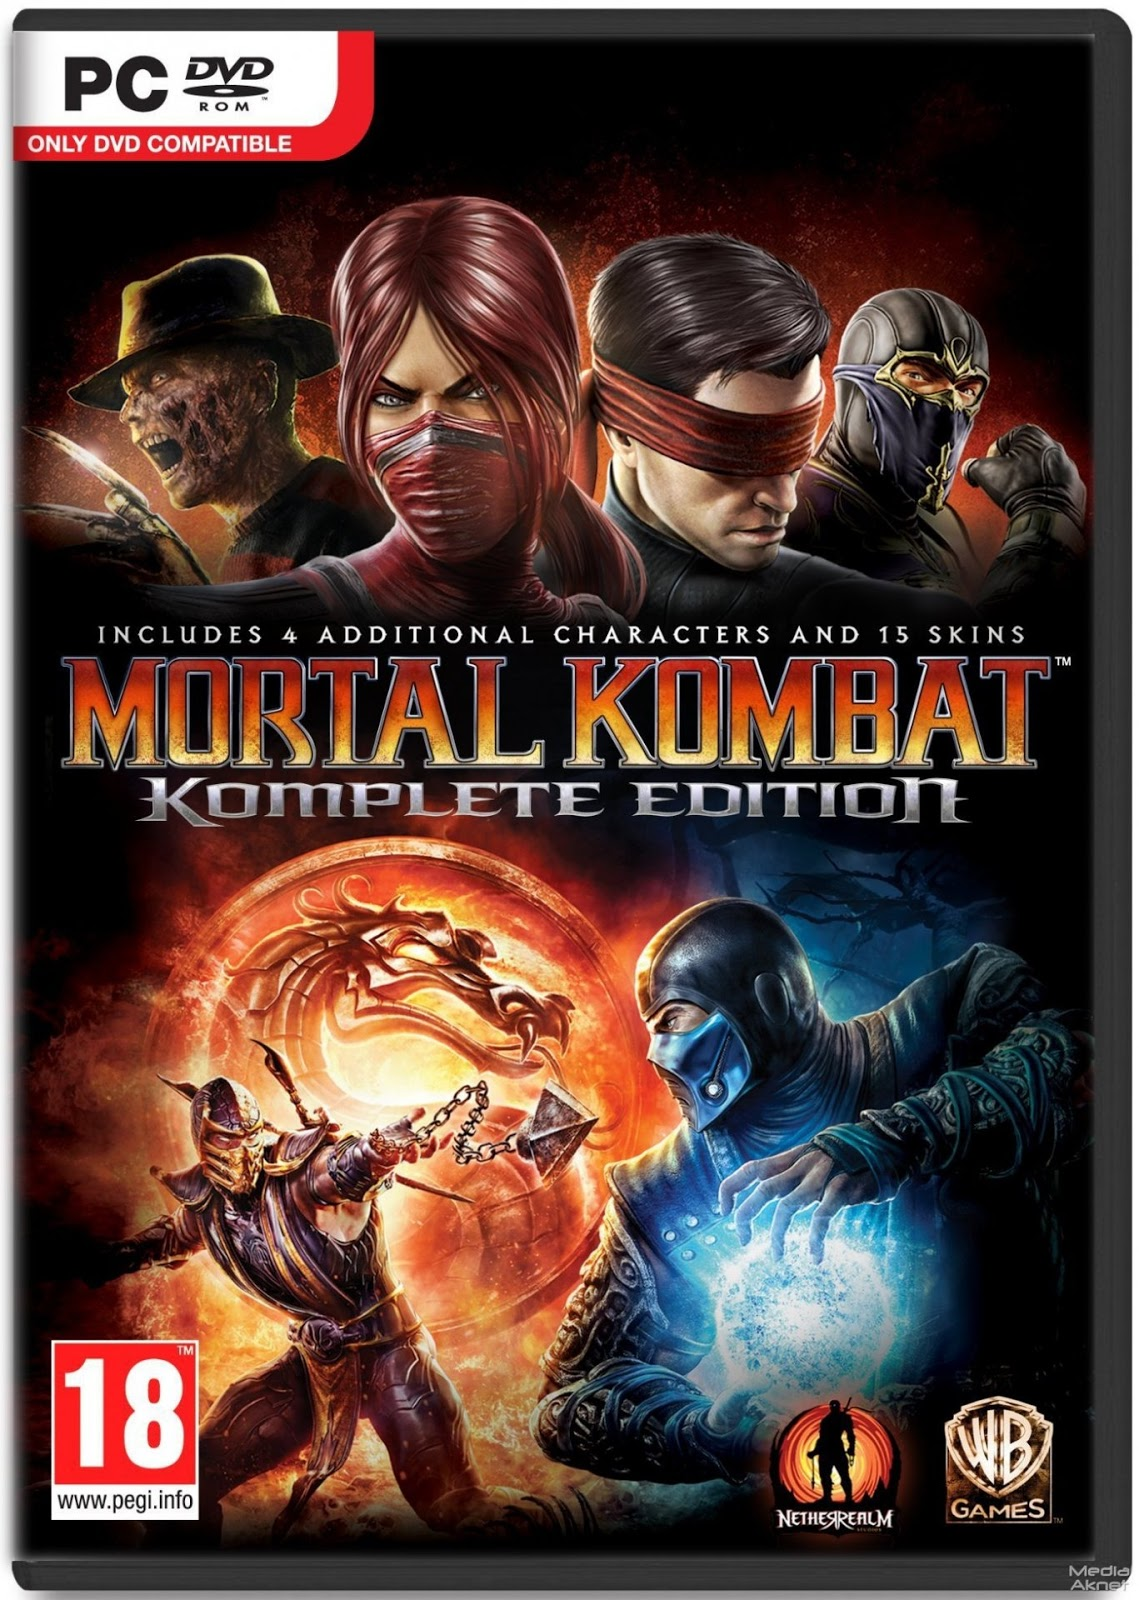 Mortal Kombat Komplete Edition Free Download - Fully Full